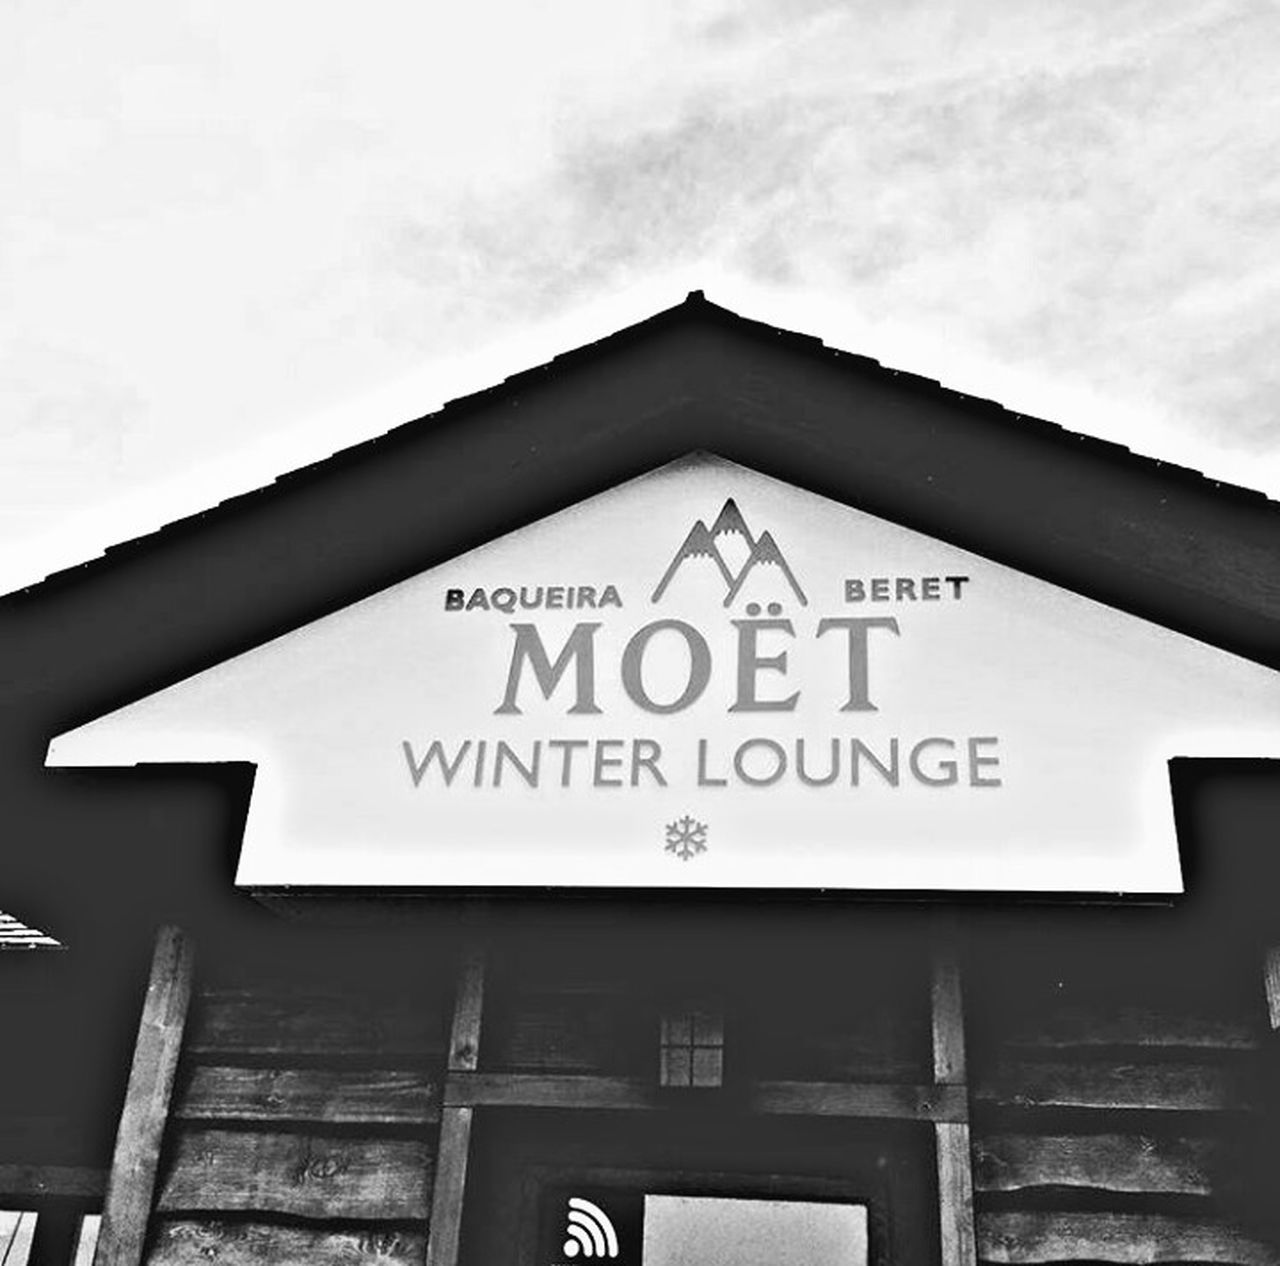 Moët&Chandon Moet & Chandon Sky Cloud - Sky Window Built Structure Building Exterior House Façade Architecture No People Roof Outdoors Day Business Finance And Industry Close-up The Week Of Eyeem First Eyeem Photo Black And White Blackandwhite Black & White EyeEm